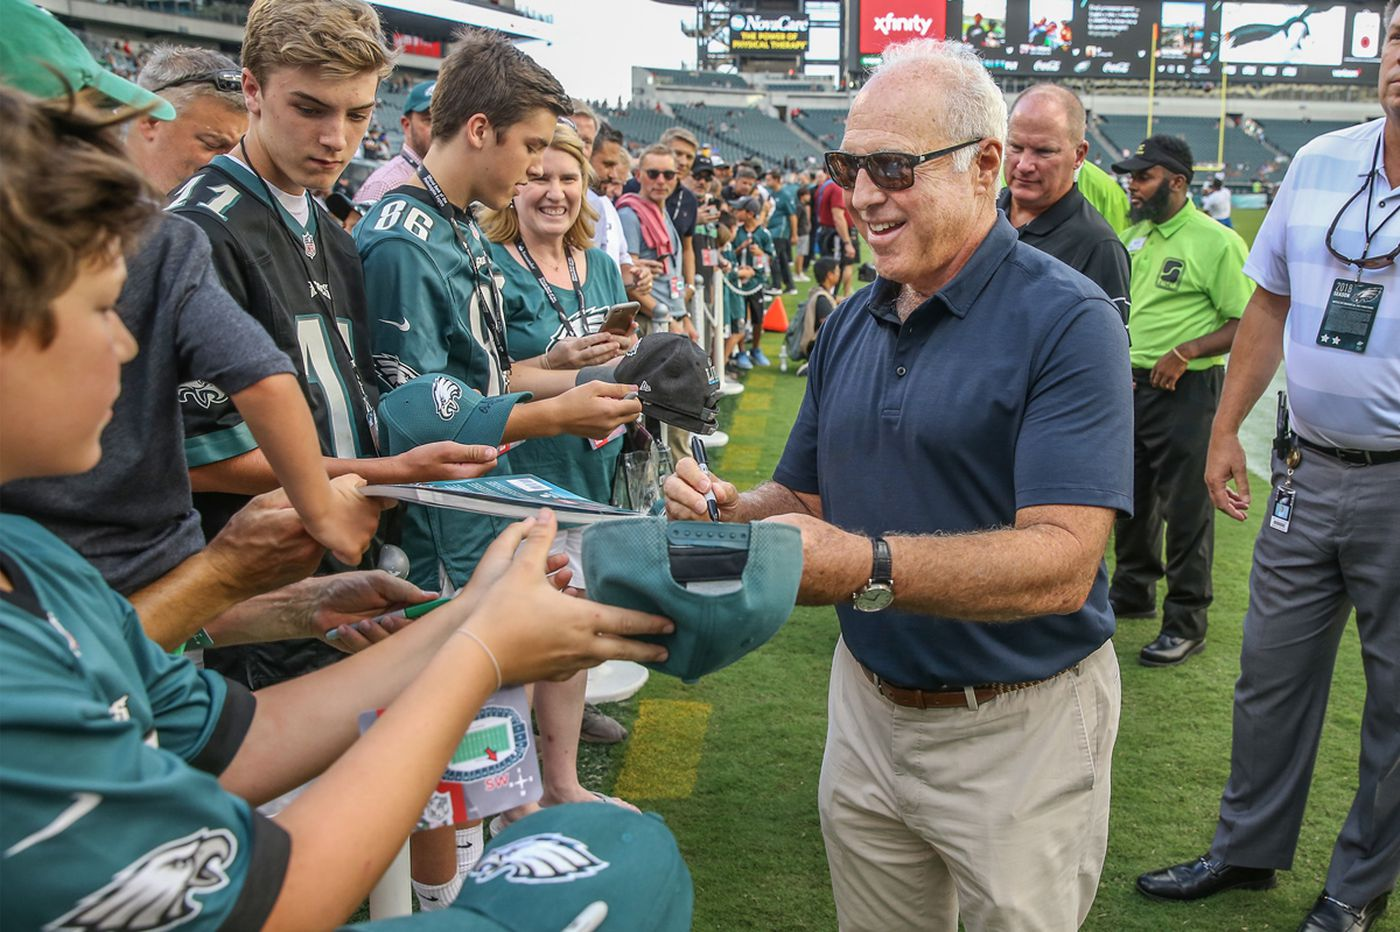 Jeff Lurie bought the Eagles for $185 million. They're worth a lot more today.